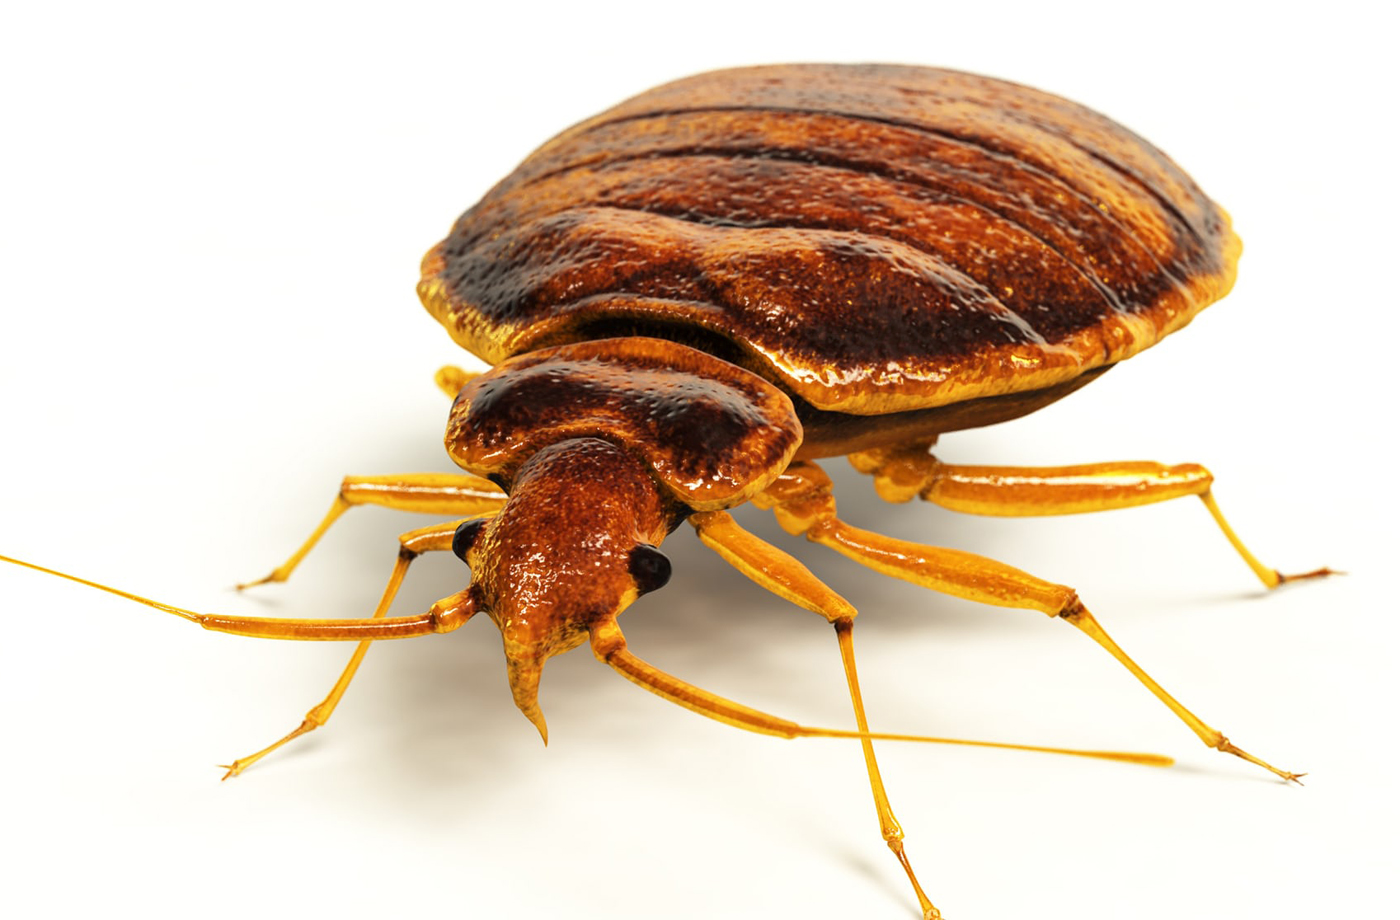 Bed bug outbreak hits British cities